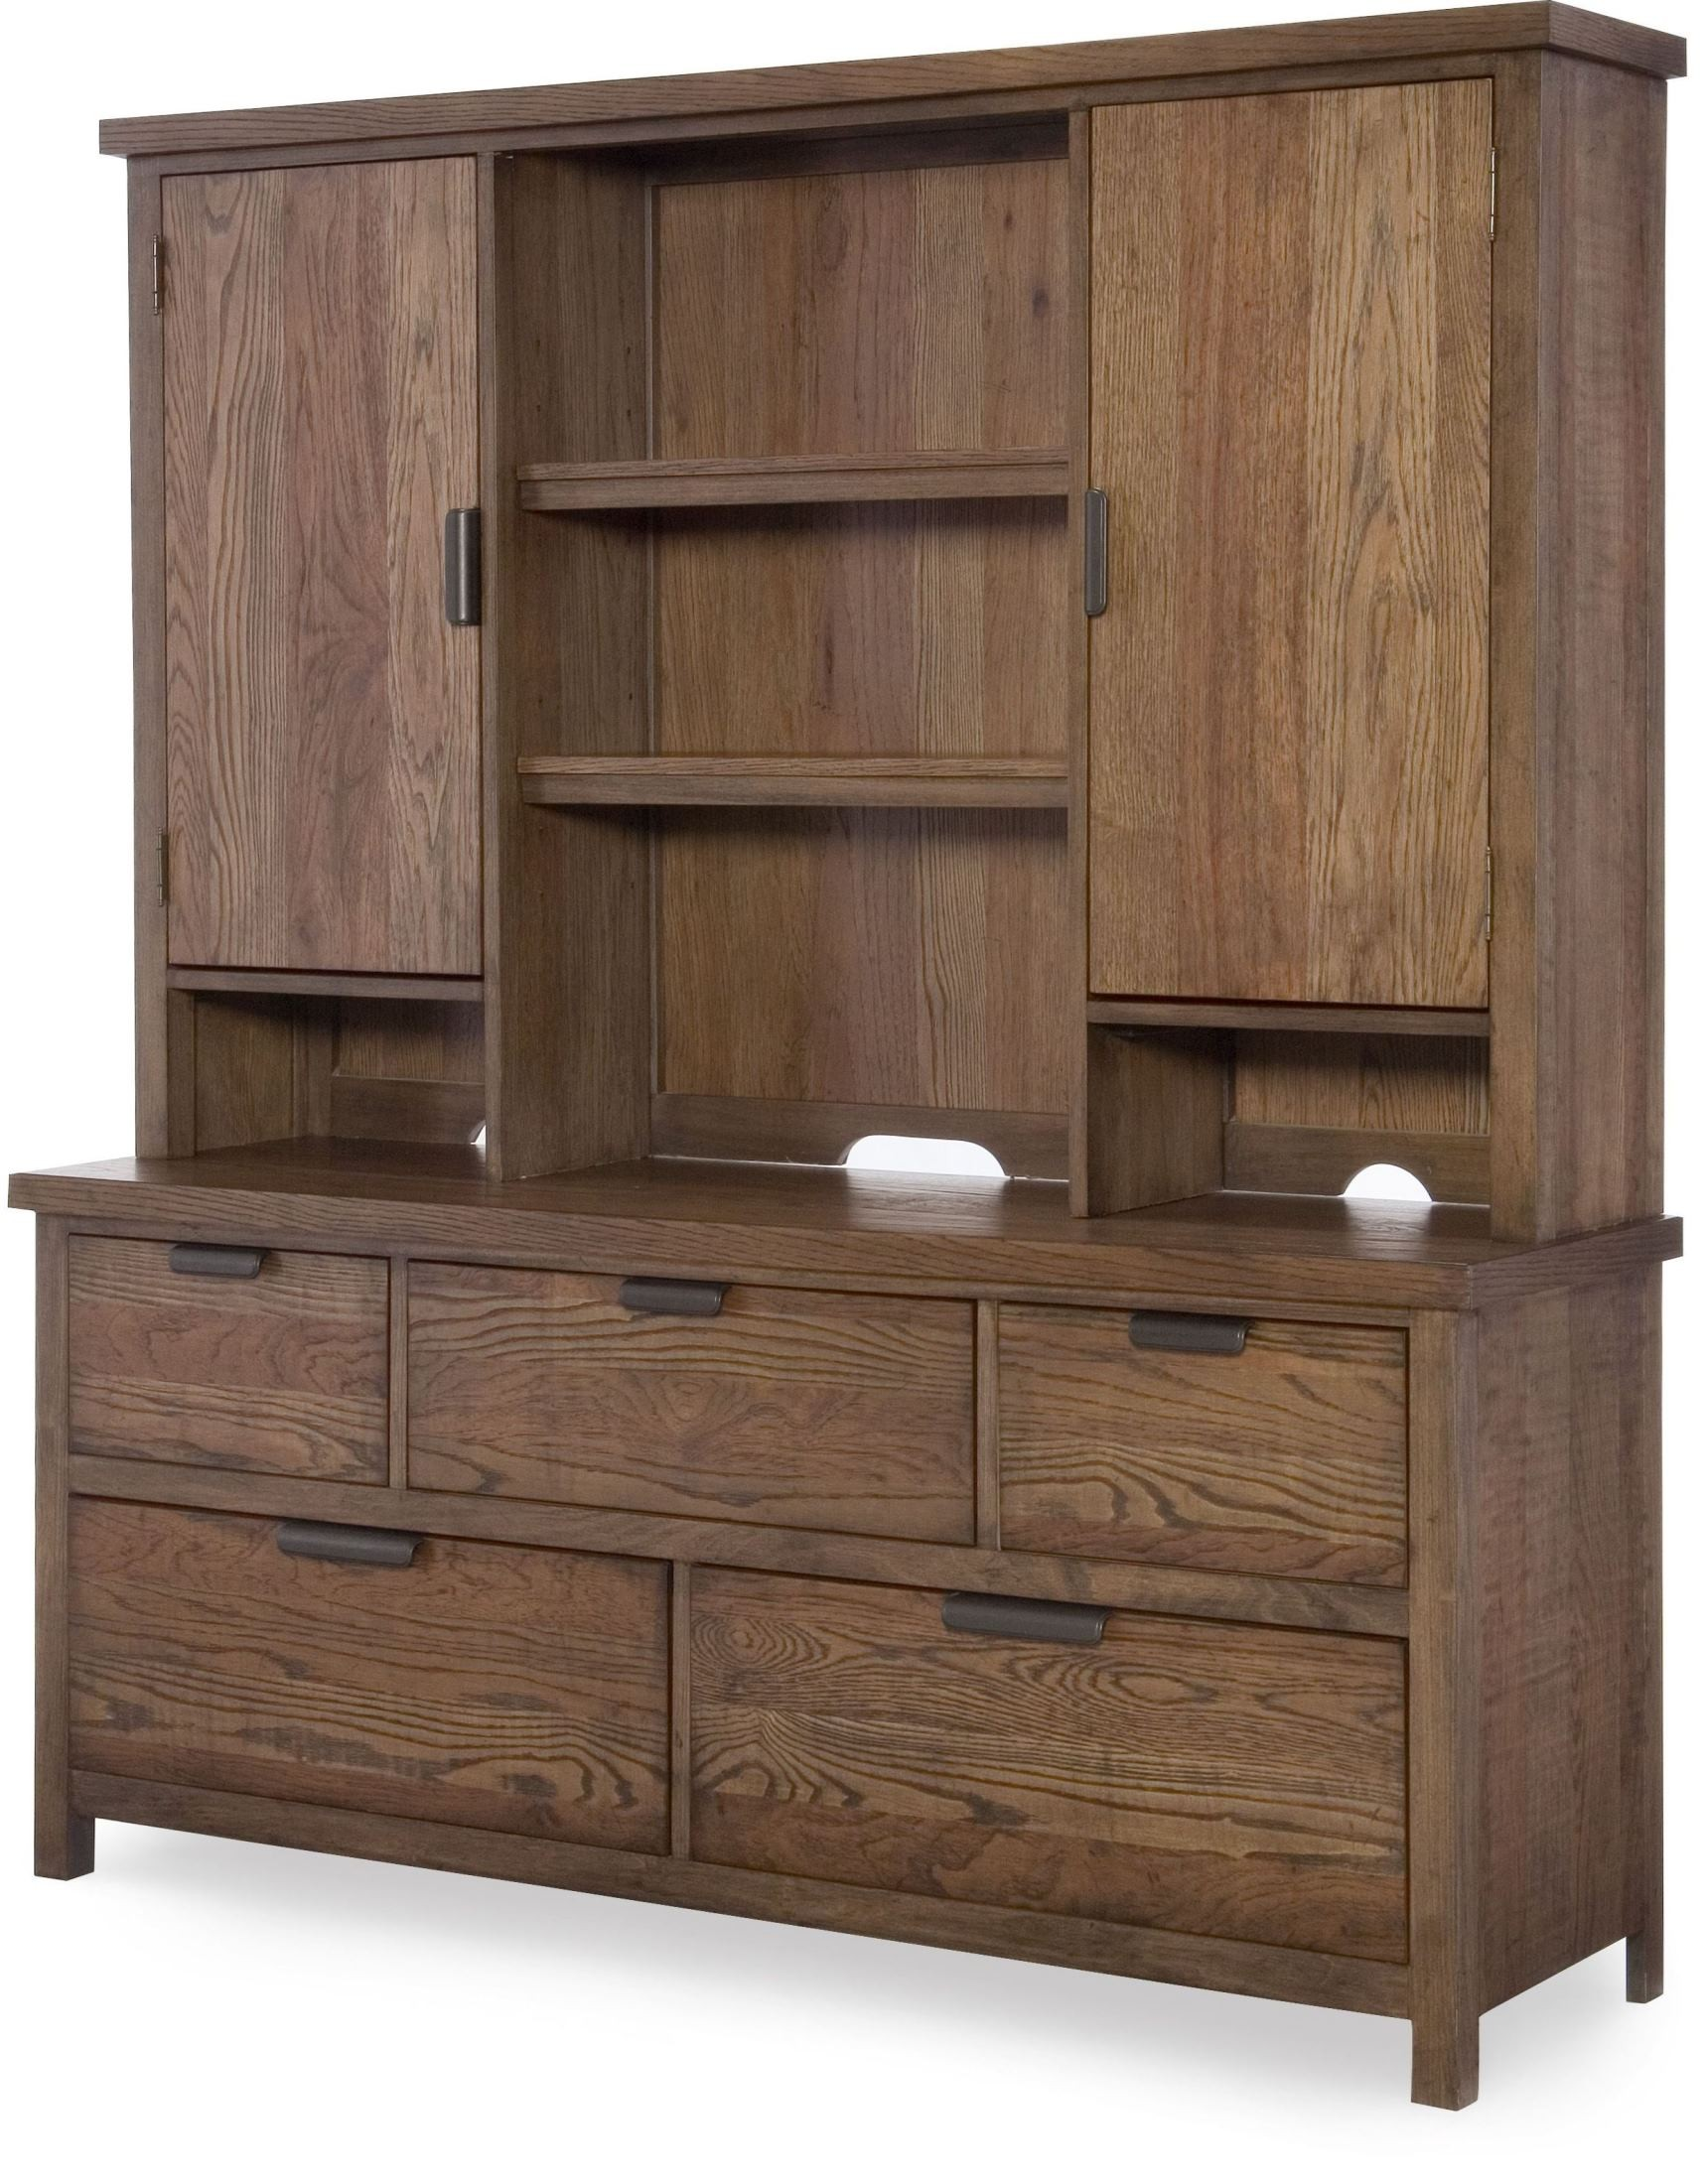 Fulton County Tawny Brown Bookcase Lounge Bedroom Set